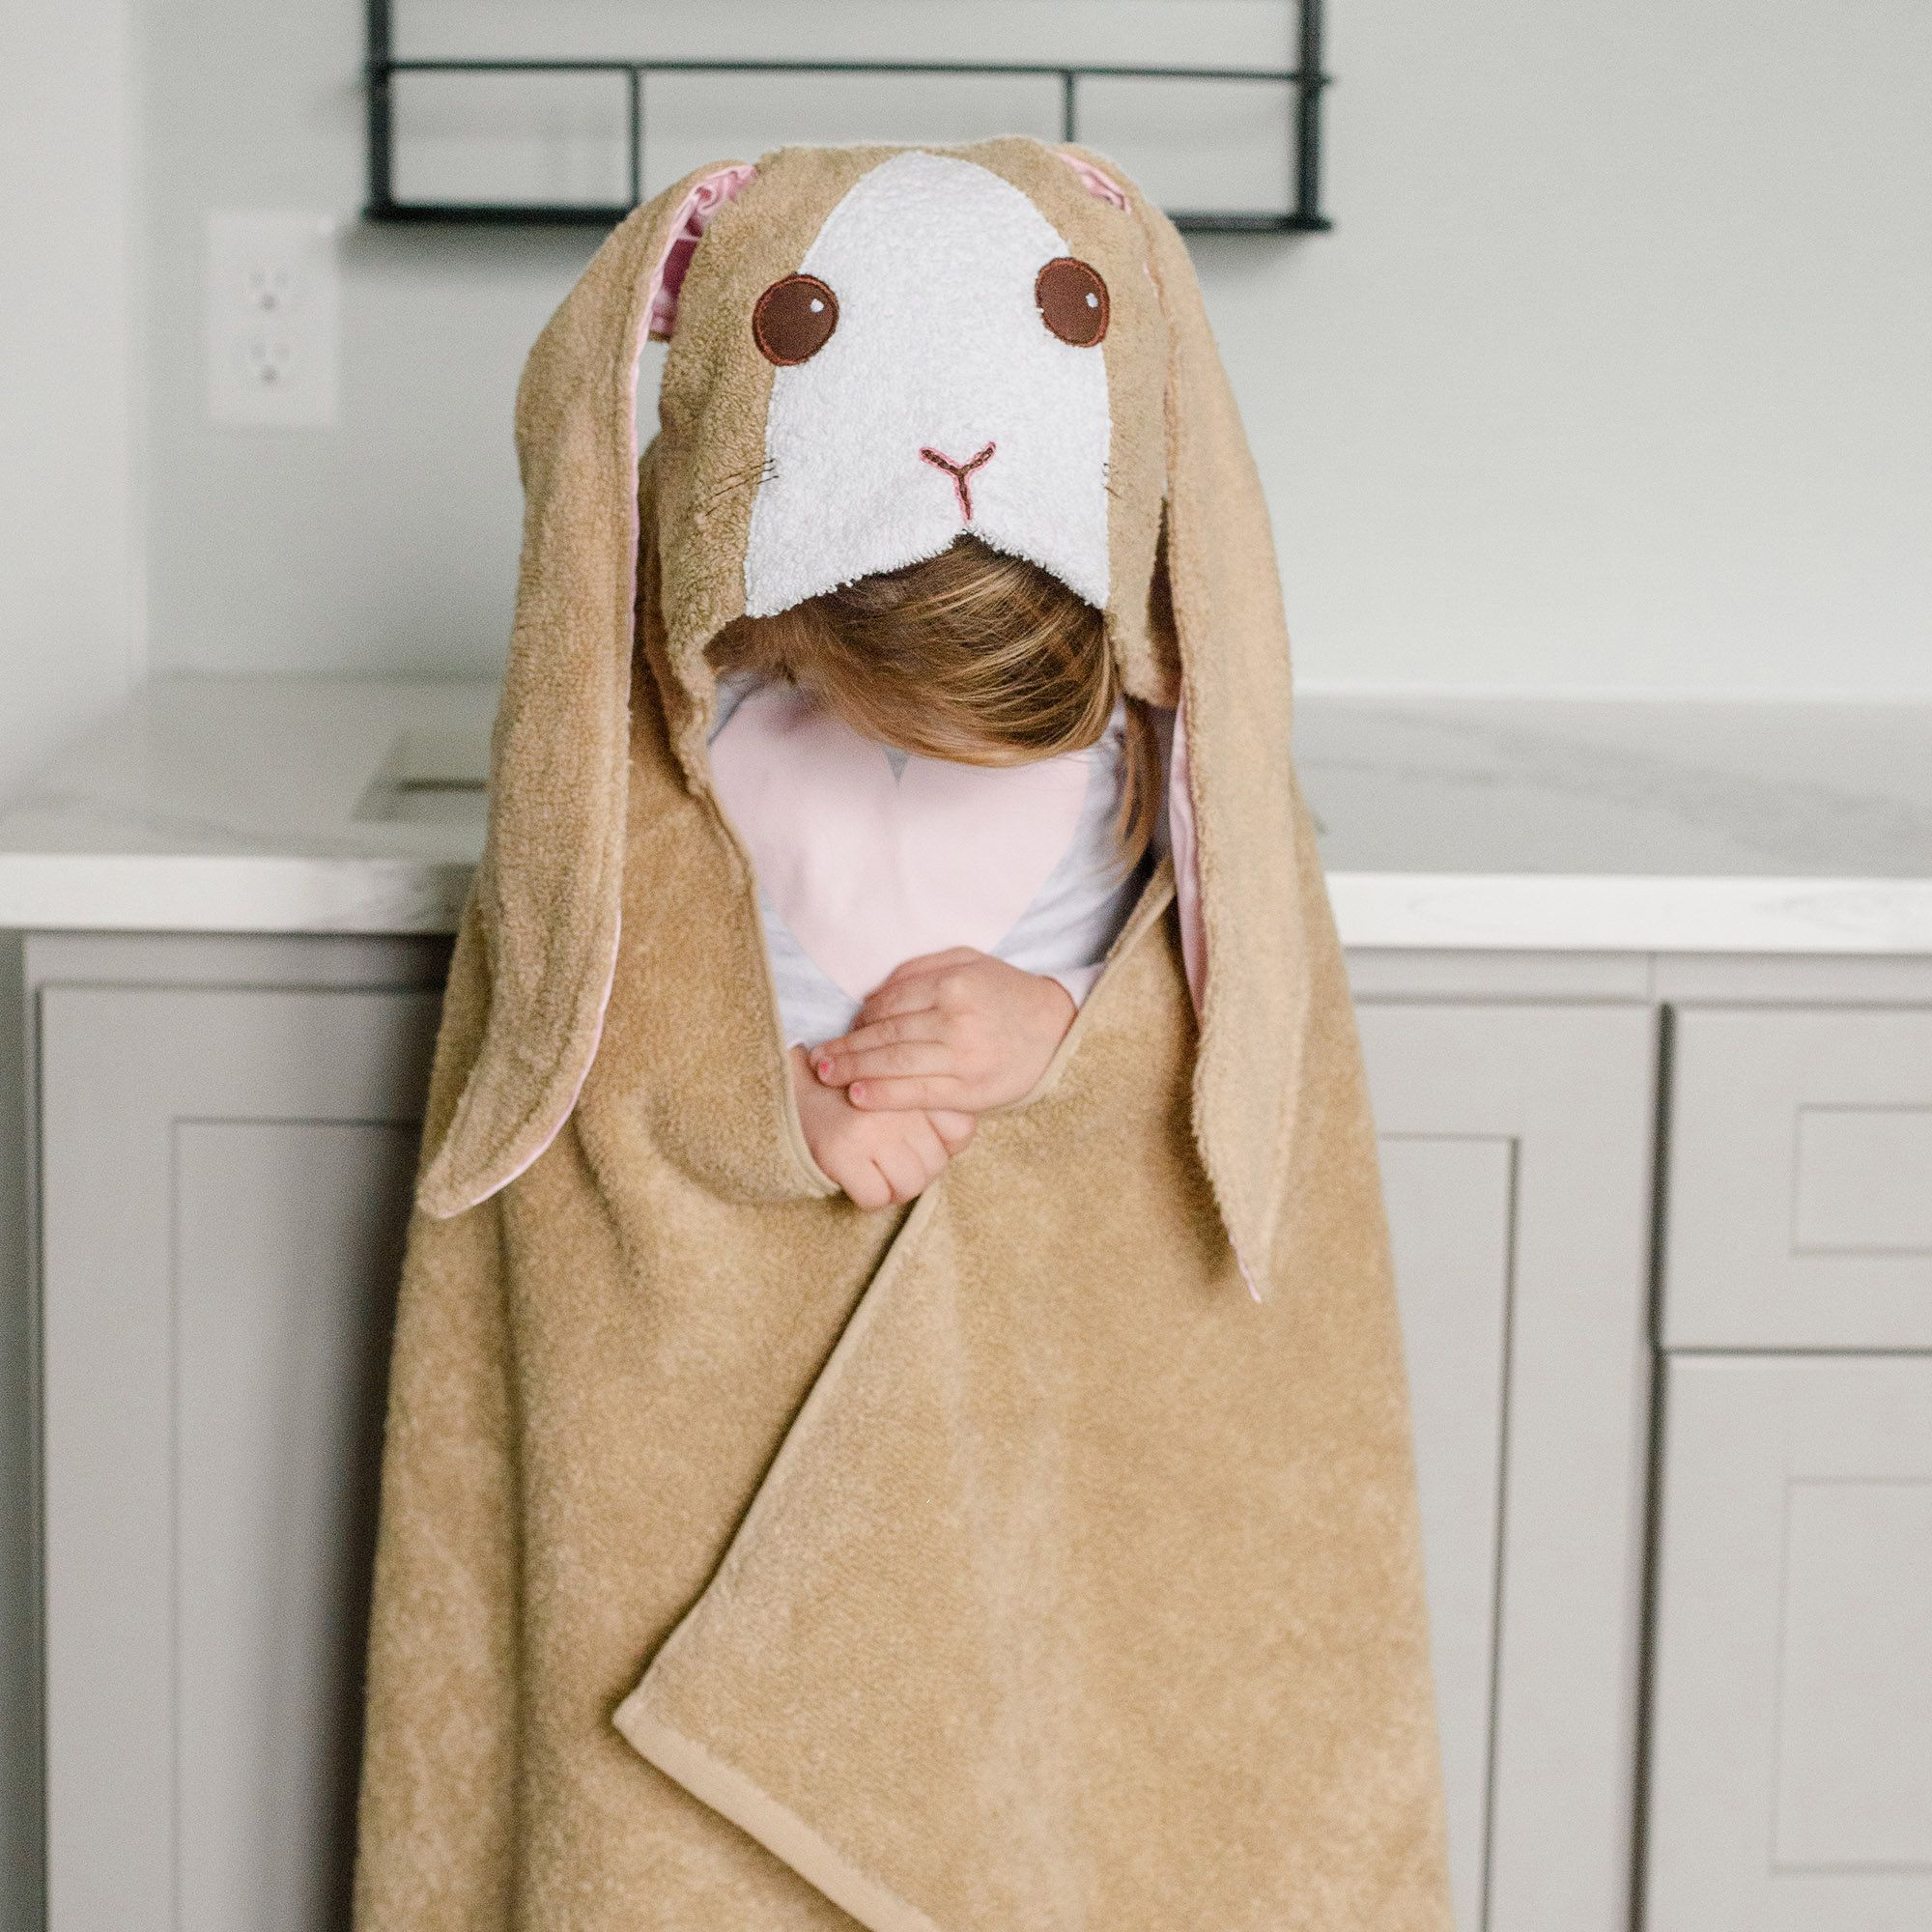 Bunny Rabbit Hooded Bath Towel With Images Hooded Bath Towels